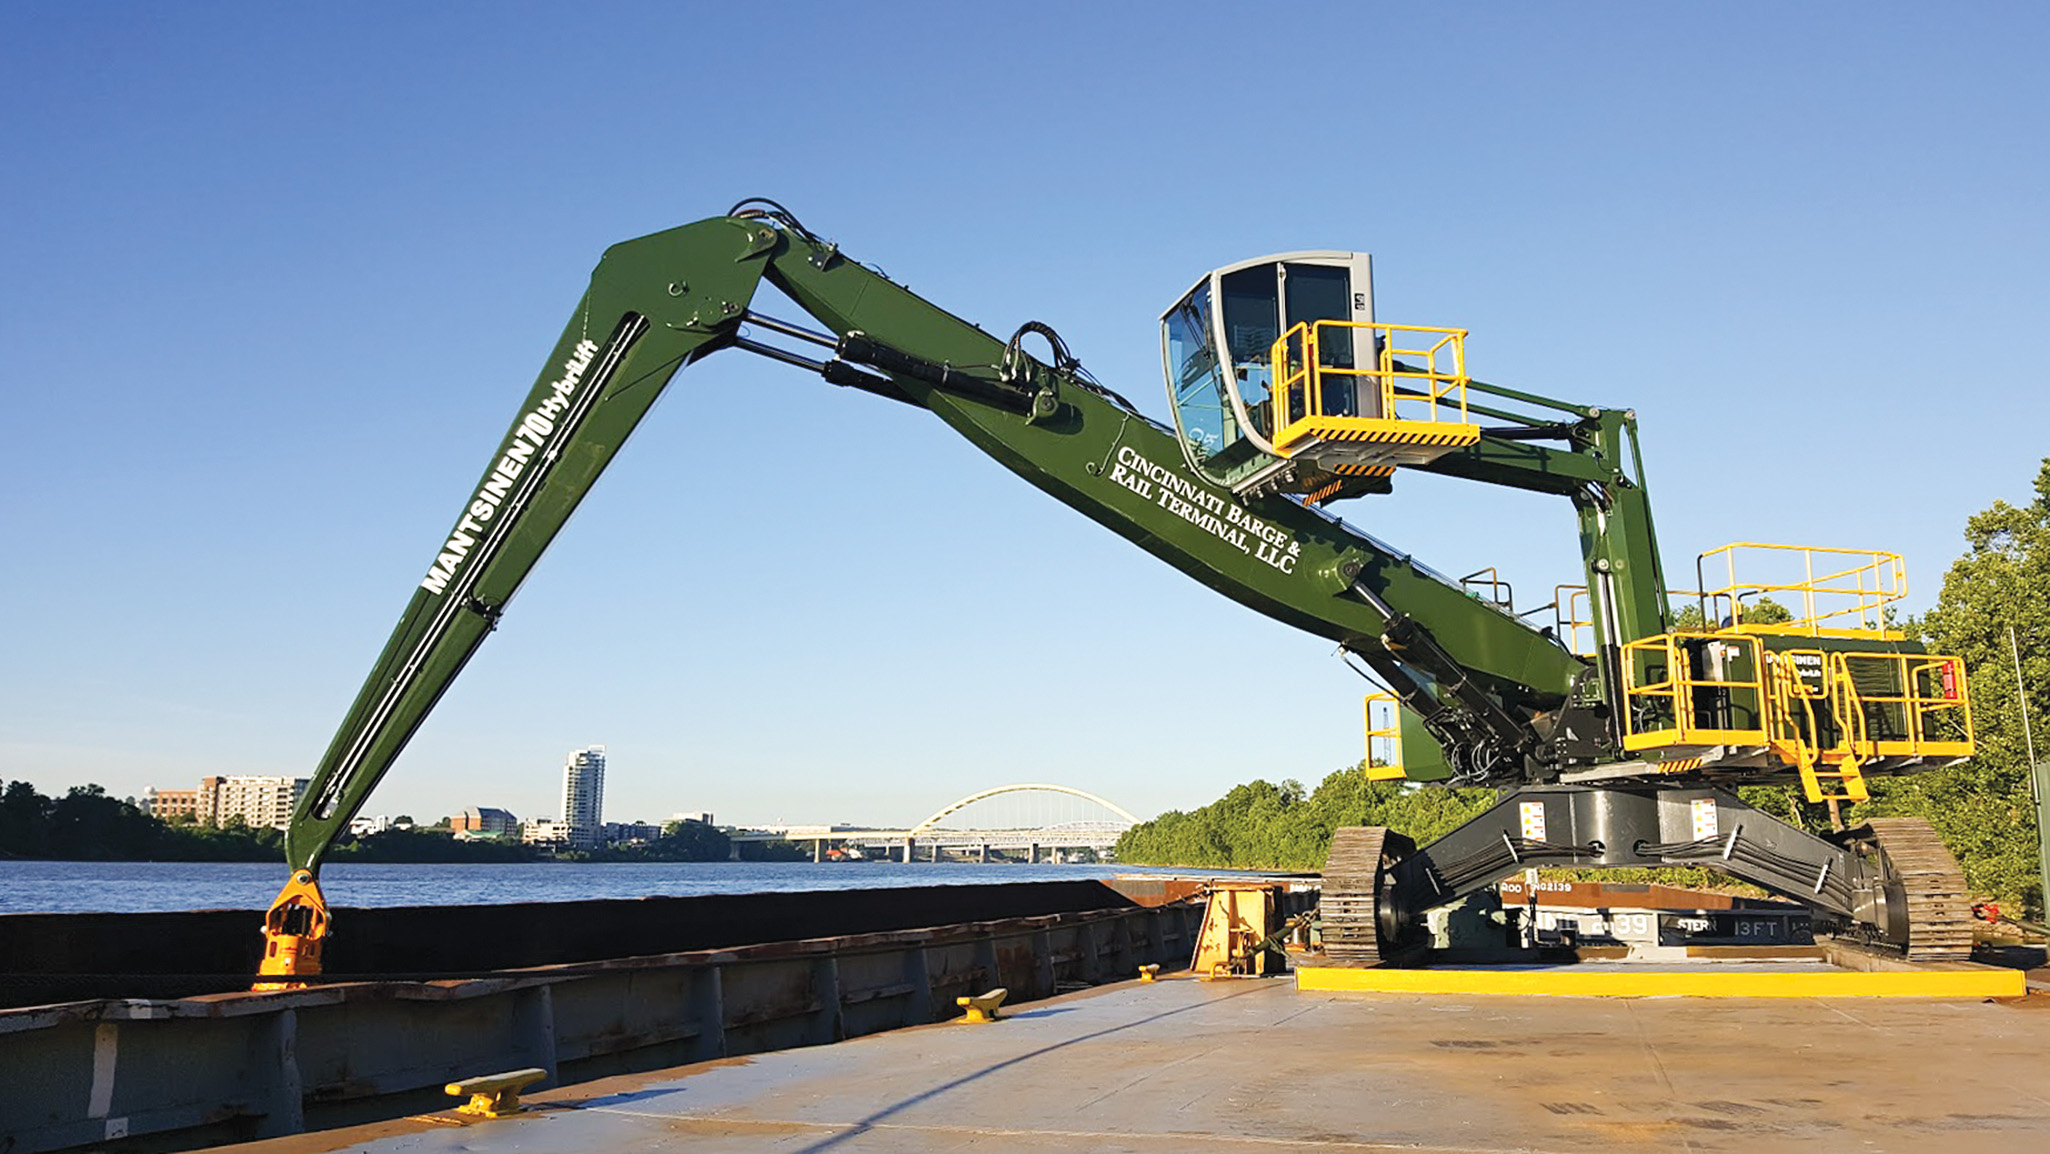 The Mantsinen 70R material handler, newly installed at Cincinnati Barge & Rail Terminal, has a maximum reach of 79 feet and is equipped with Tier 4 emissions-control technology.